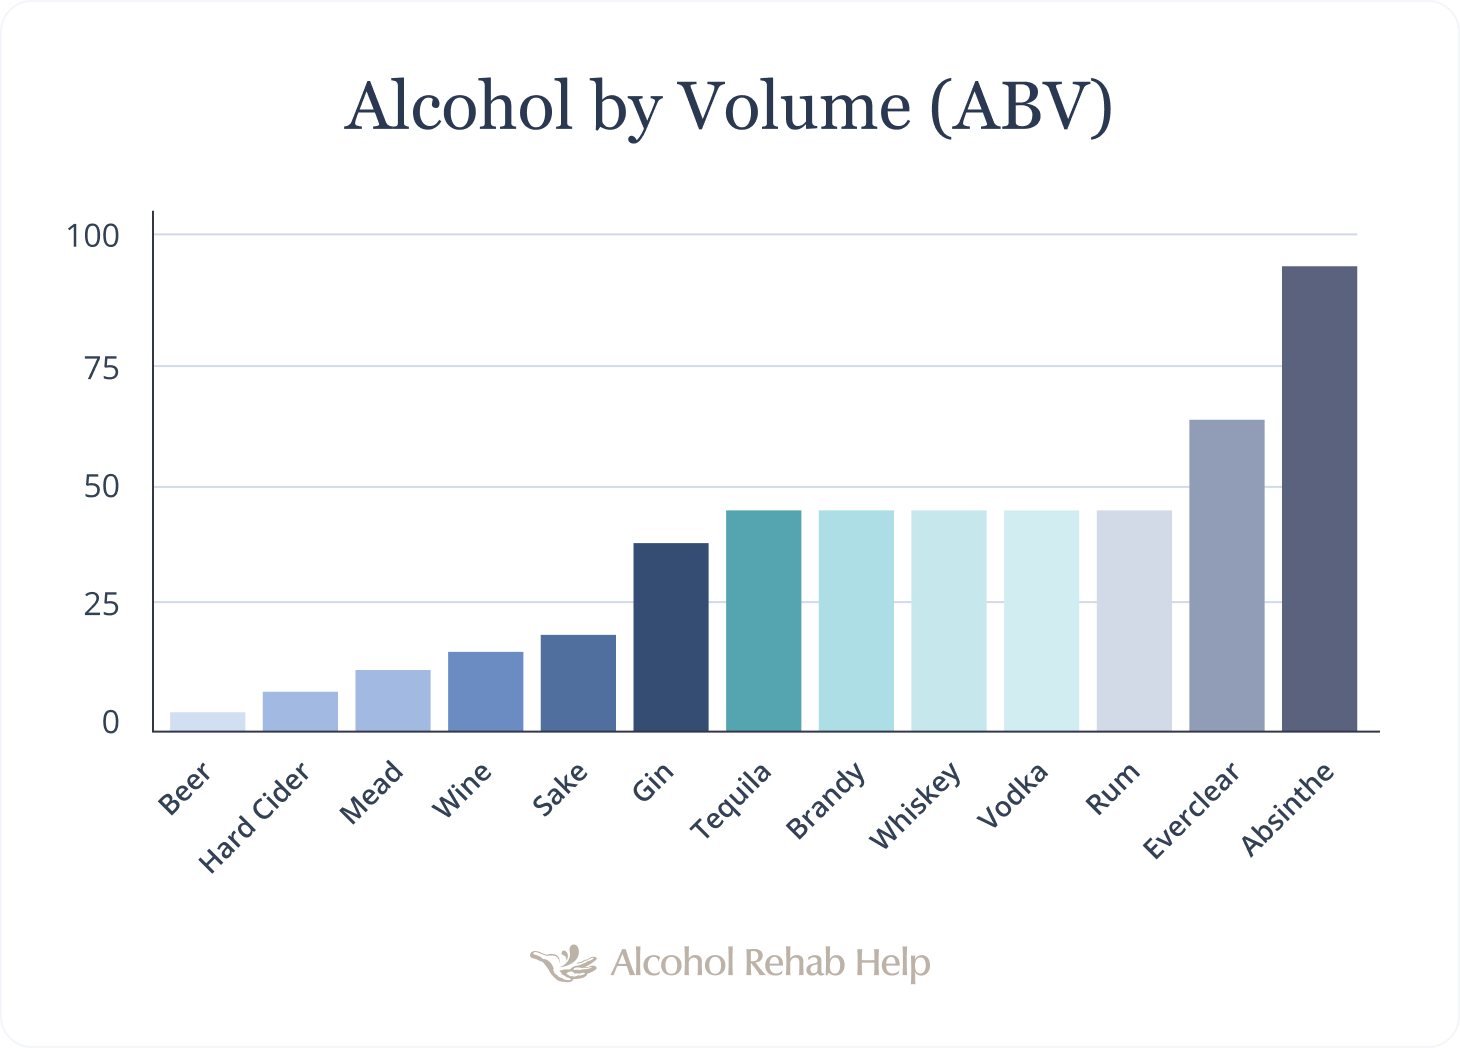 Graph showing the ABV content in different types of alcohol